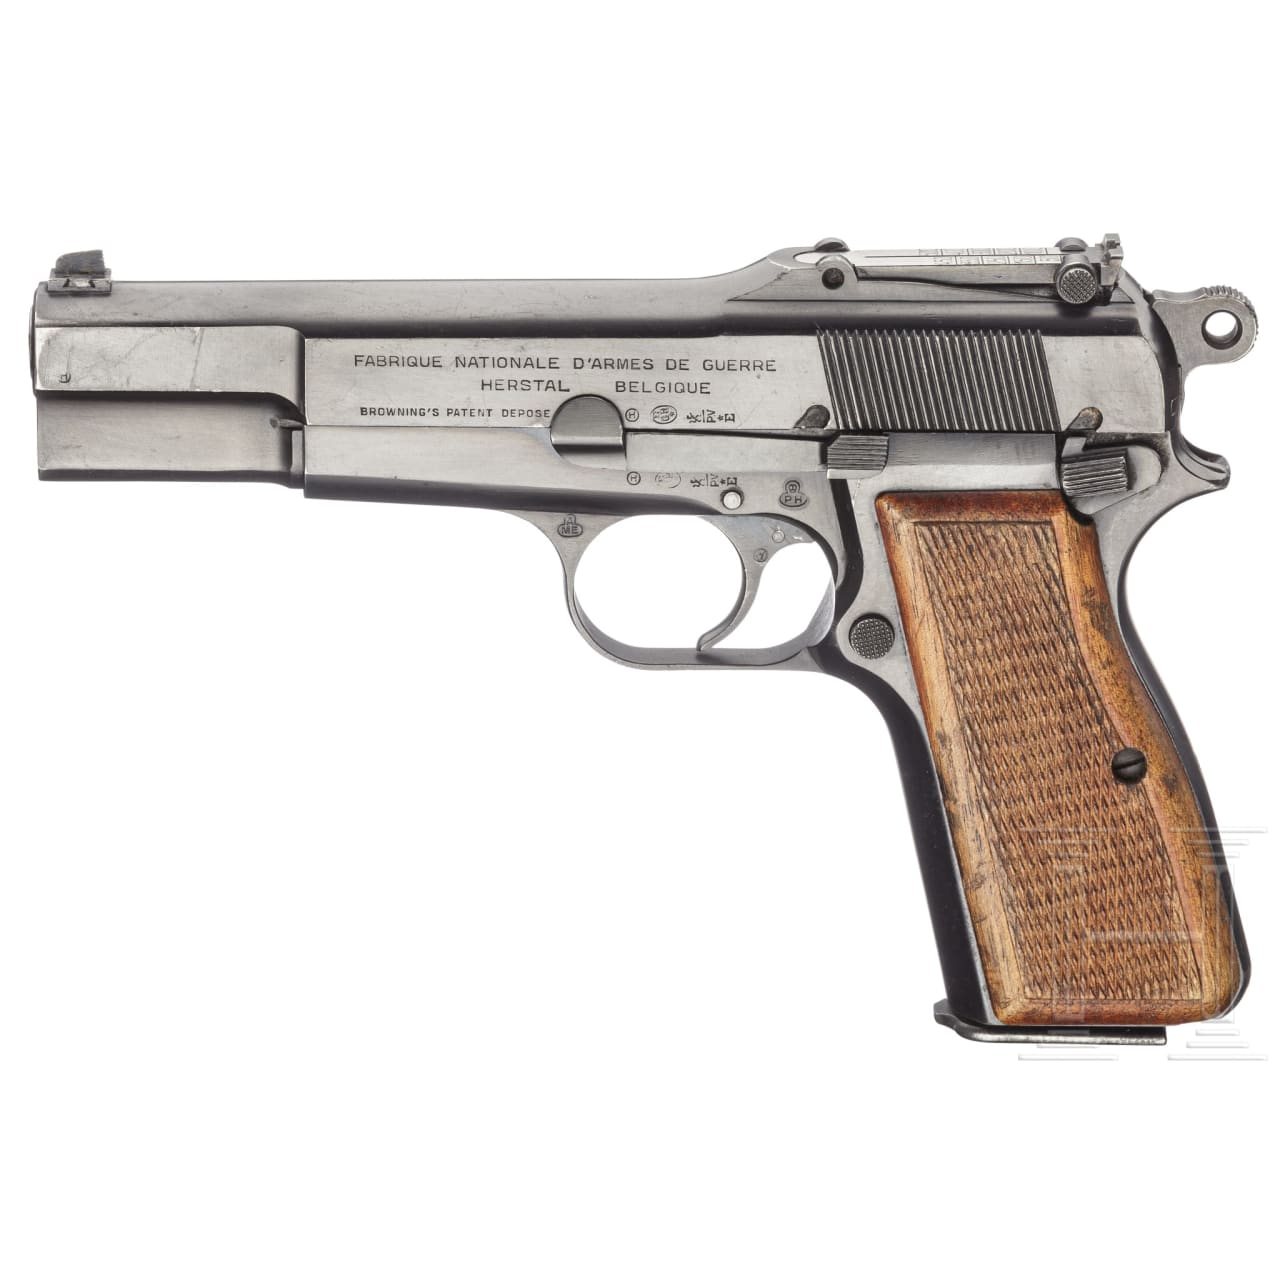 FN GP (Grand Puissance) Mod. 35